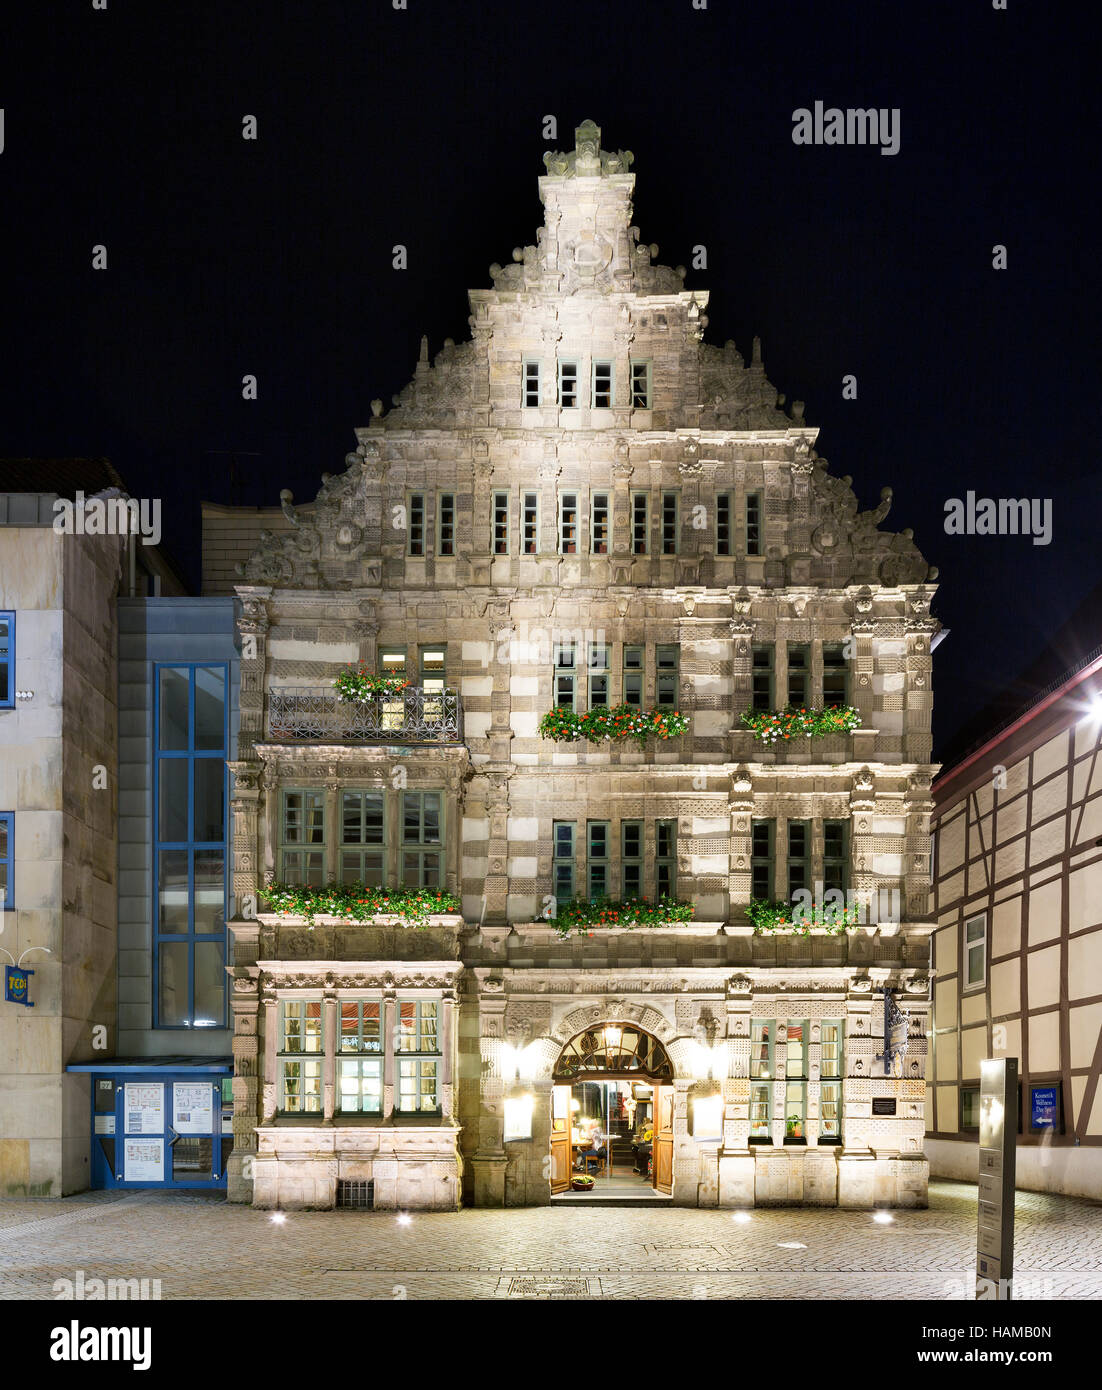 Pied Piper's House, built in 1603, Weser Renaissance, Hamelin, Lower Saxony, Germany - Stock Image